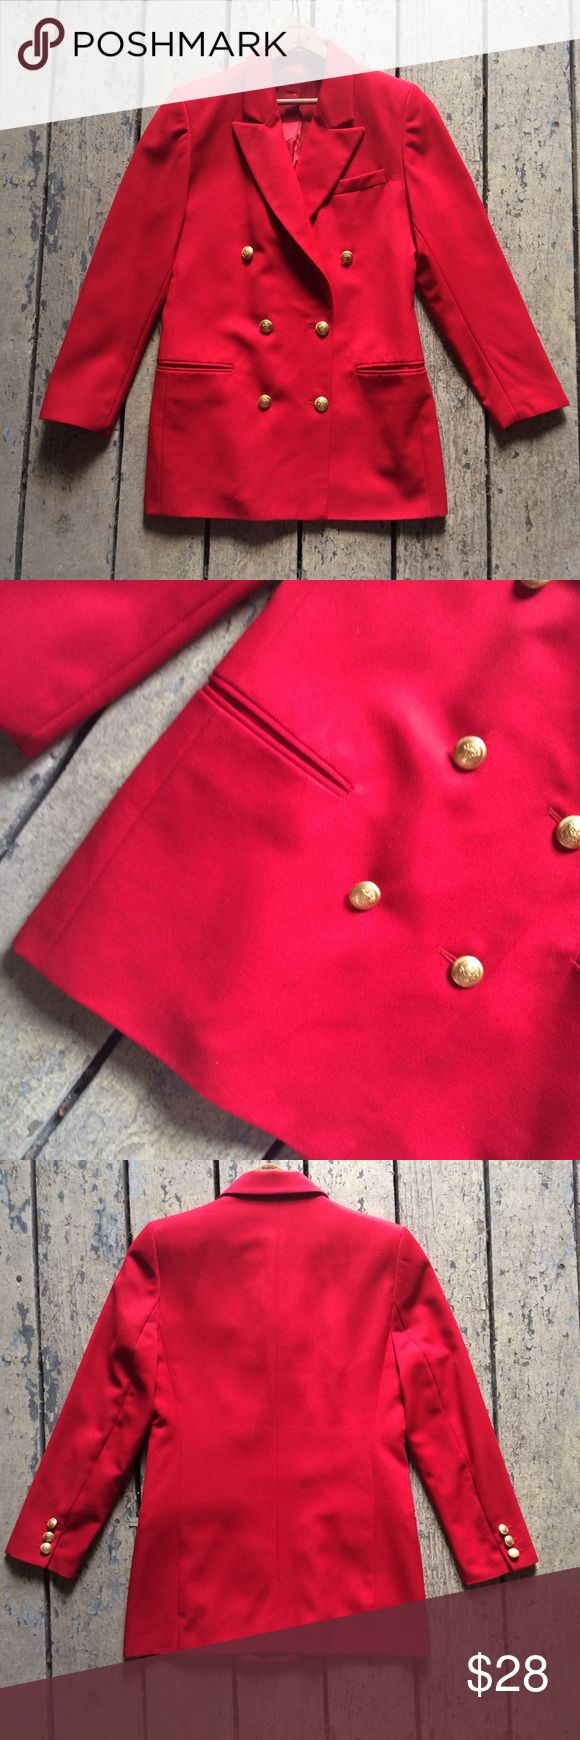 "Vintage Marks & Spencer Red Schoolboy Blazer Vintage 80s red double breasted schoolboy blazer in red with large, decorative gold tone buttons. 2 pockets. Great vintage condition. Bust 38"" Waist 34"" Length 32"". Vintage Jackets & Coats Blazers"